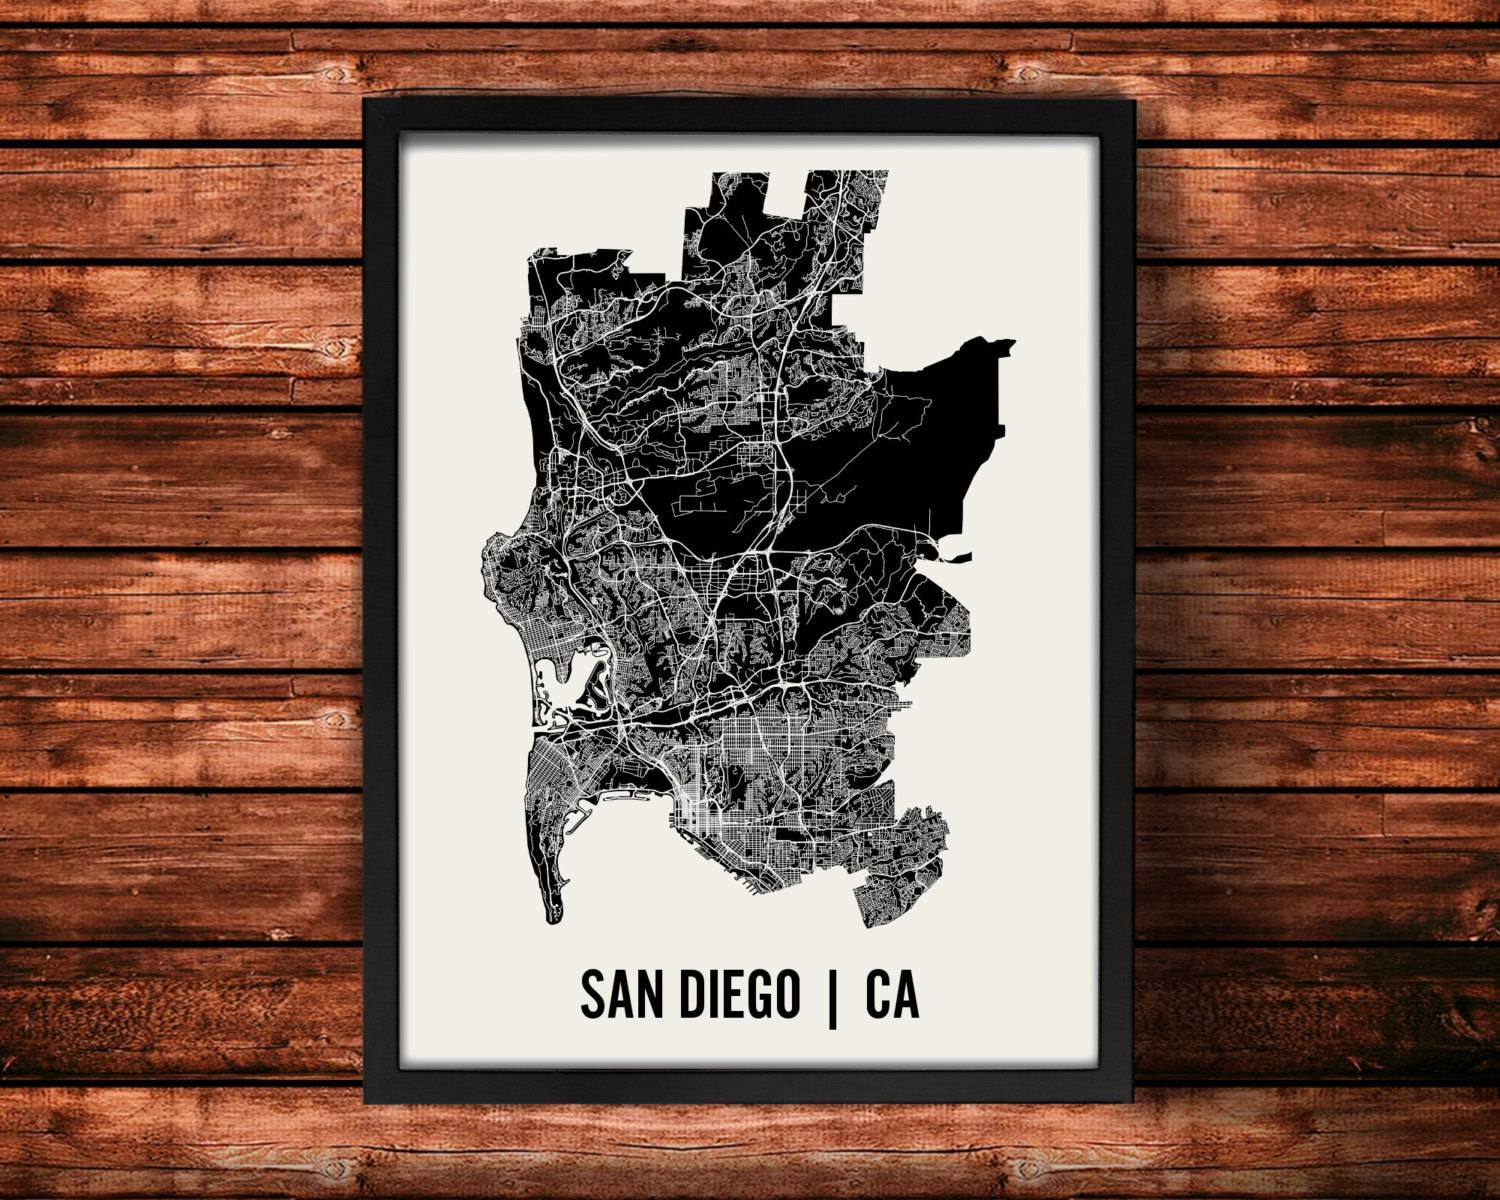 San Diego Map Art Print San Diego Print San Diego Art Throughout Most Up To Date Map Wall Art Prints (View 13 of 20)